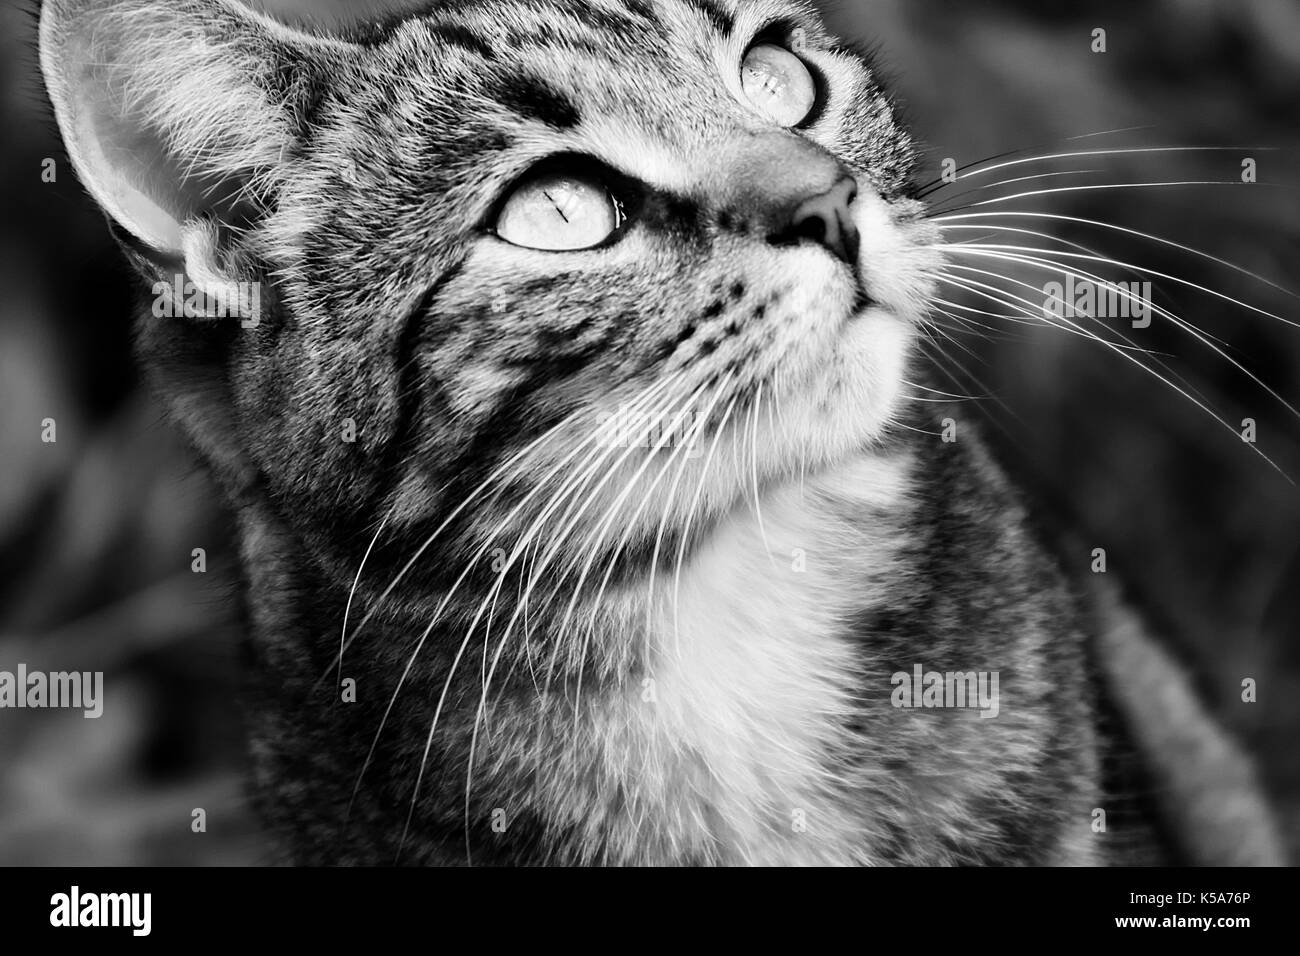 Female tabby cat looking up - Stock Image